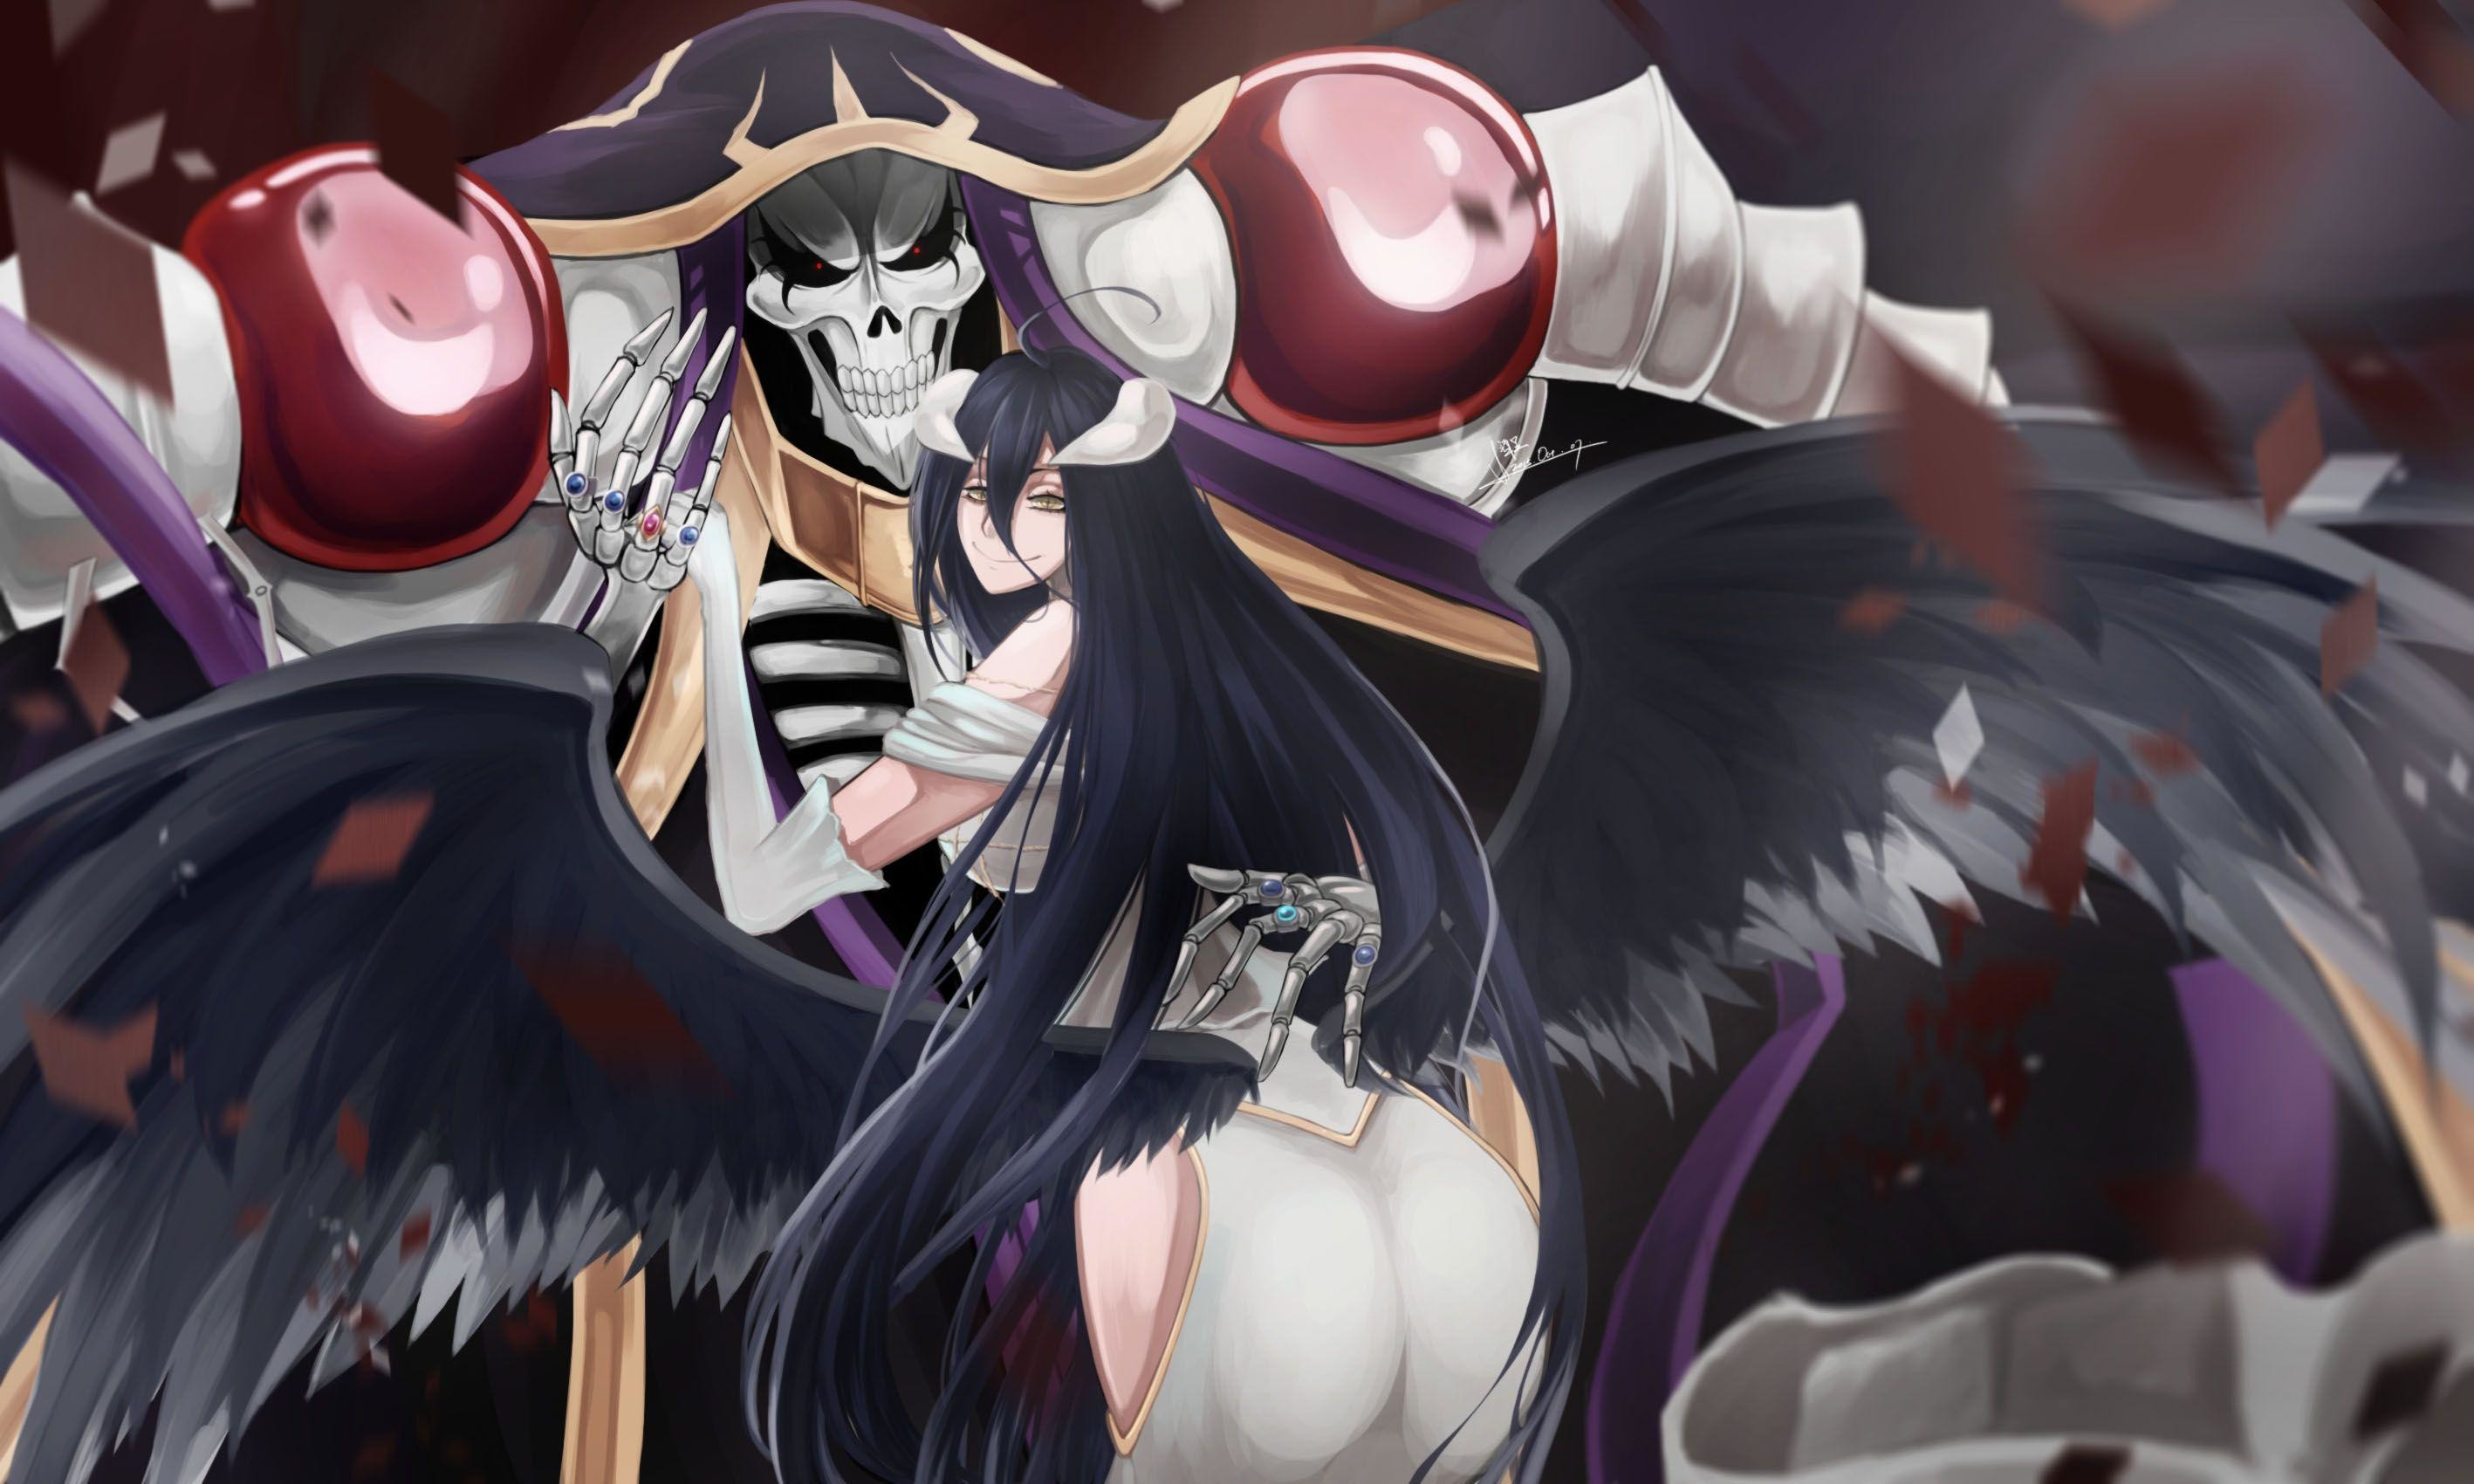 2835x1701 49 Albedo (Overlord) HD Wallpapers | Backgrounds - Wallpaper Abyss .